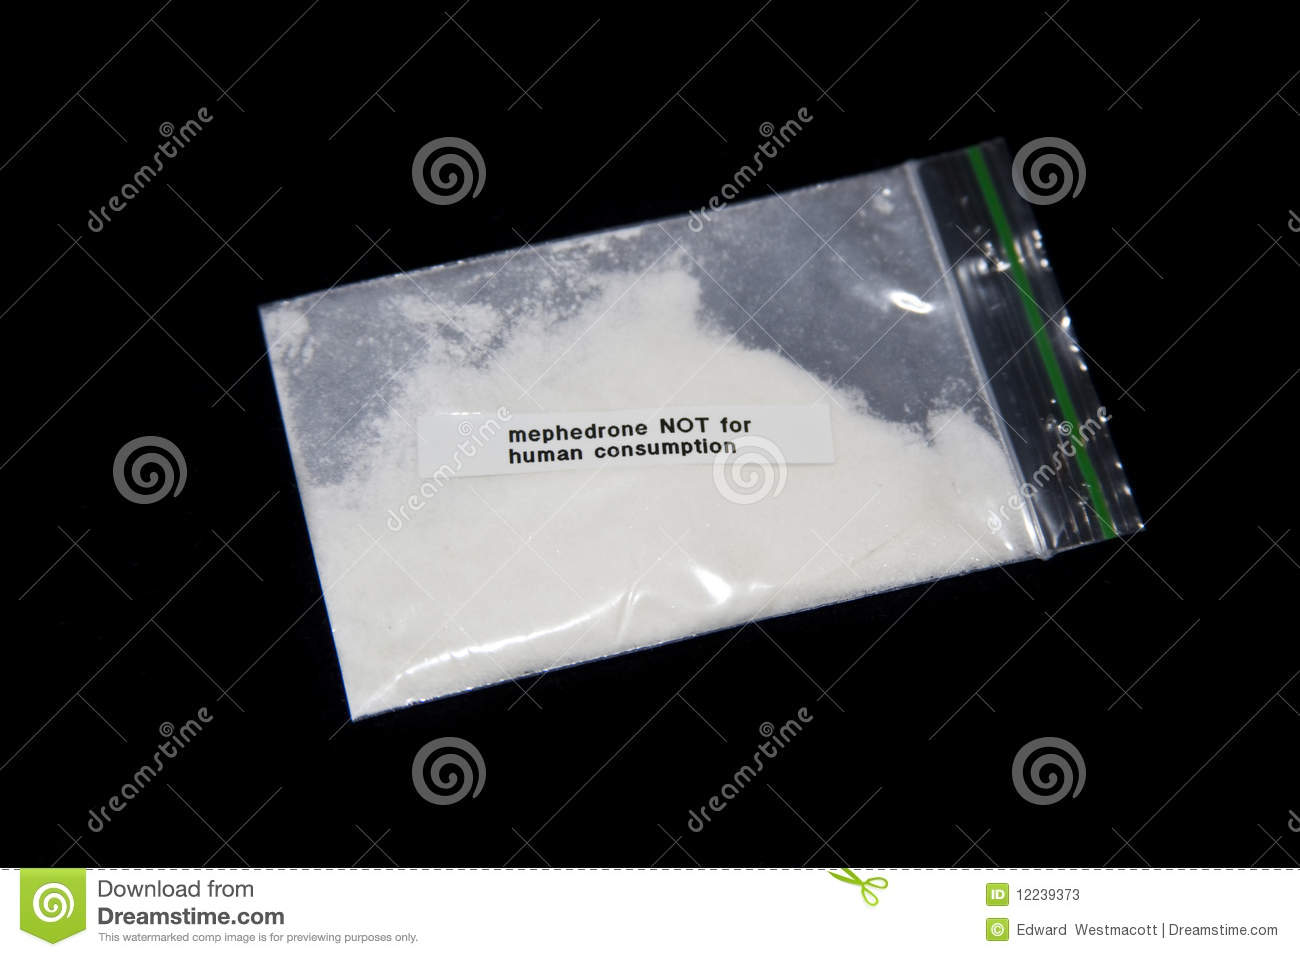 what is drone drug with Photos Stock Poudre Blanche De Drogue De Mephedrone Image12239373 on Cdc Sends Message With Graphic Anti Smoking Ads also Uk Man Will Go To Prison For Using Drone To Fly Drugs Into Prison furthermore Russian Aircraft Carrier English Channel likewise ISIS Beatles Named British as well Photos Stock Poudre Blanche De Drogue De Mephedrone Image12239373.